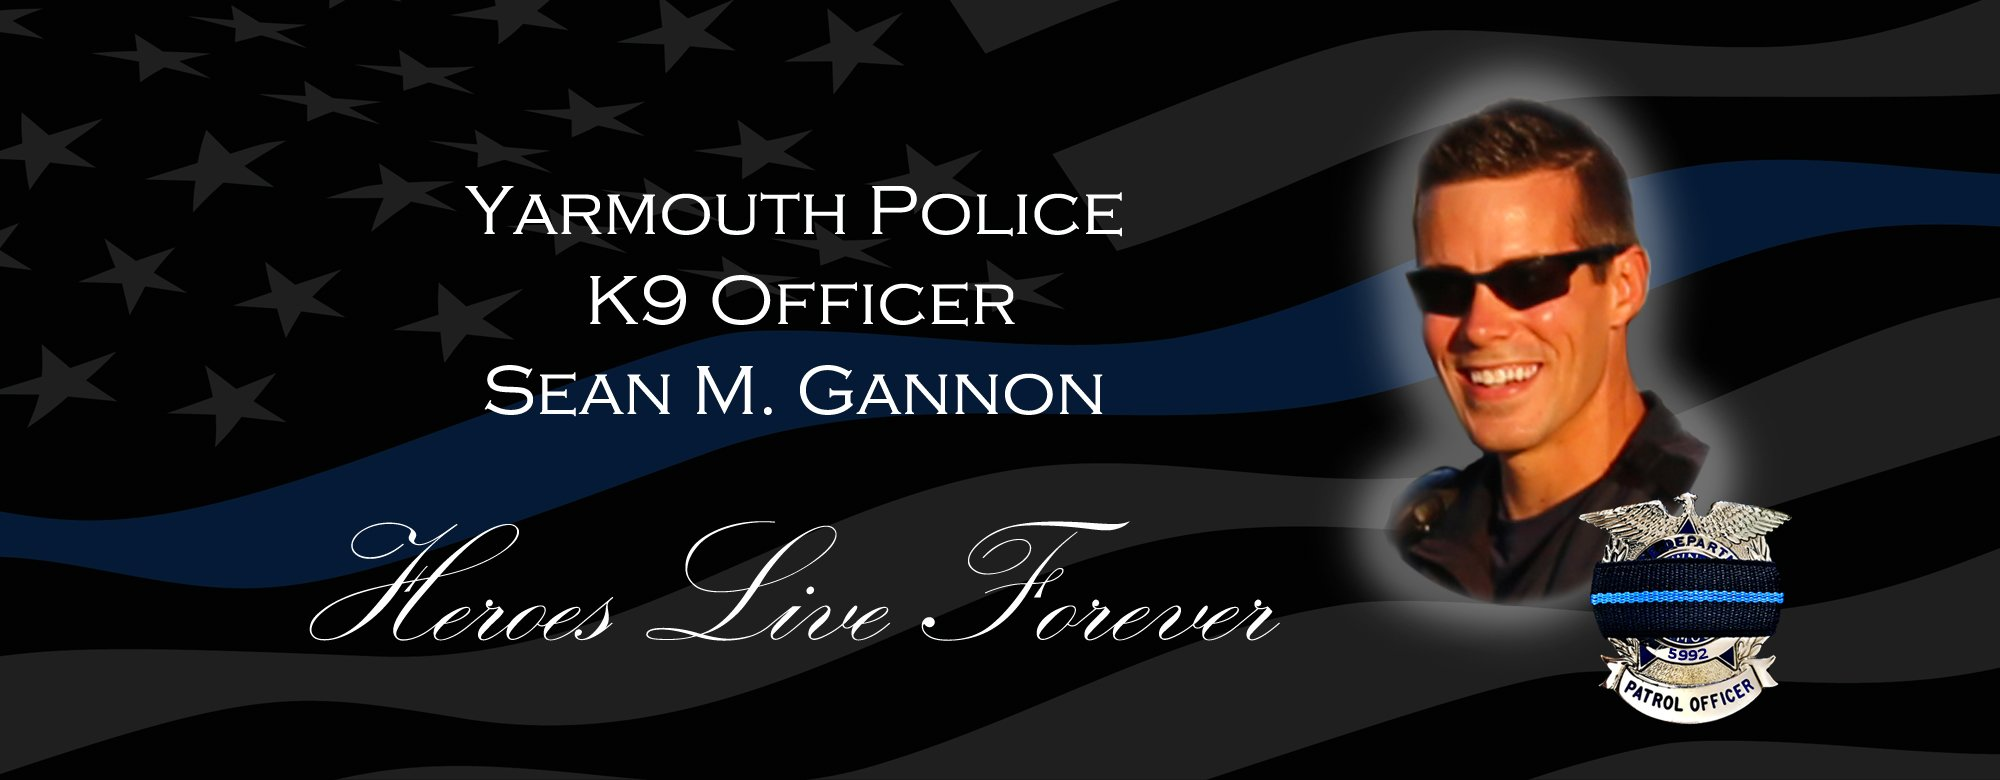 YARMOUTH POLICE SERGEANT SEAN M  GANNON: K9 Officer Promoted